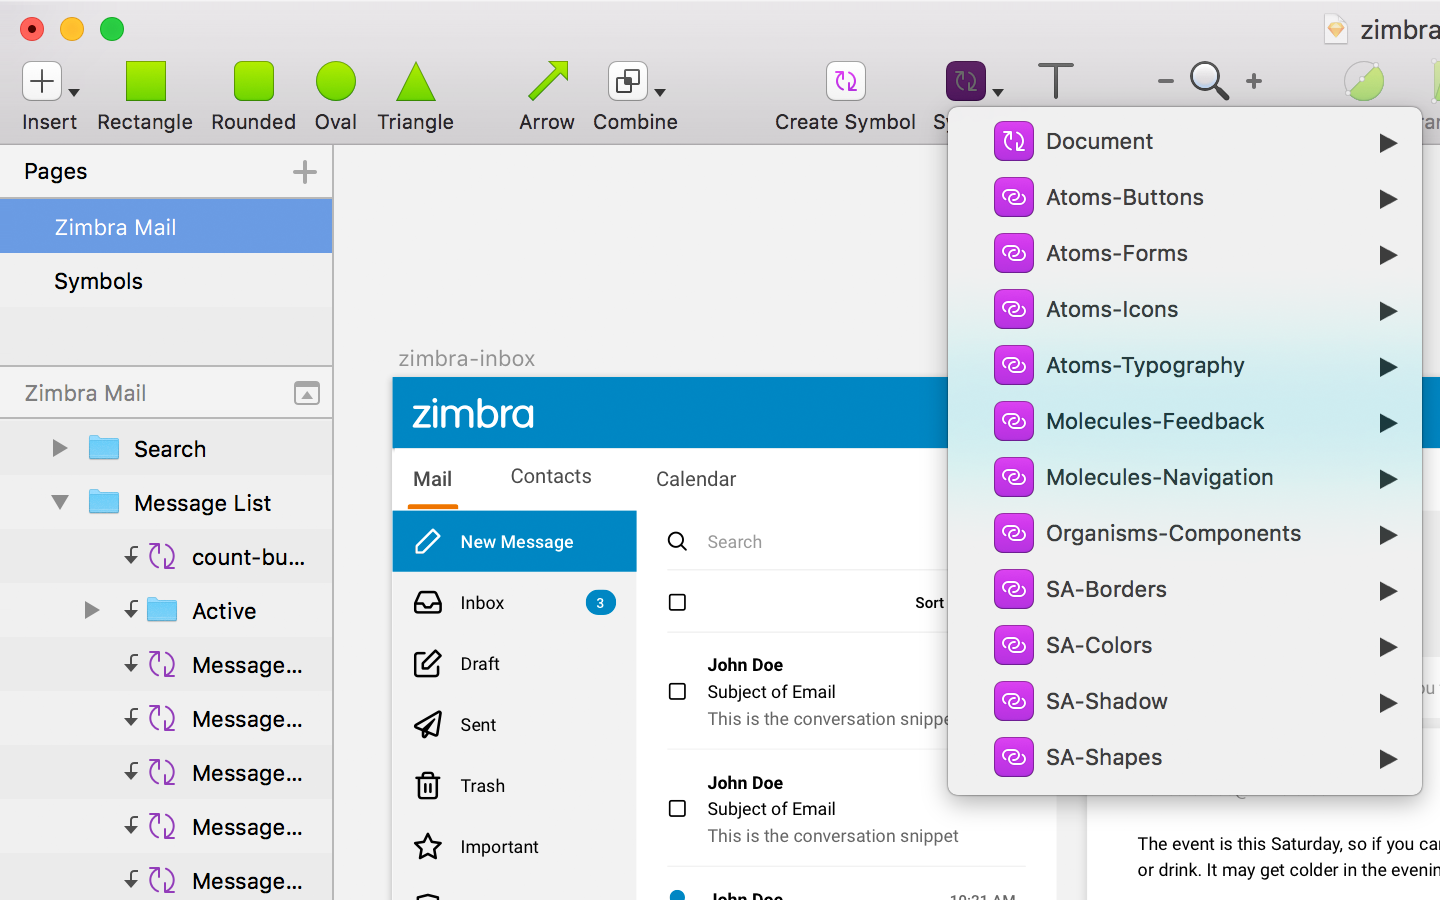 Zimbra | Timothy Stegner - Product Design + Research +